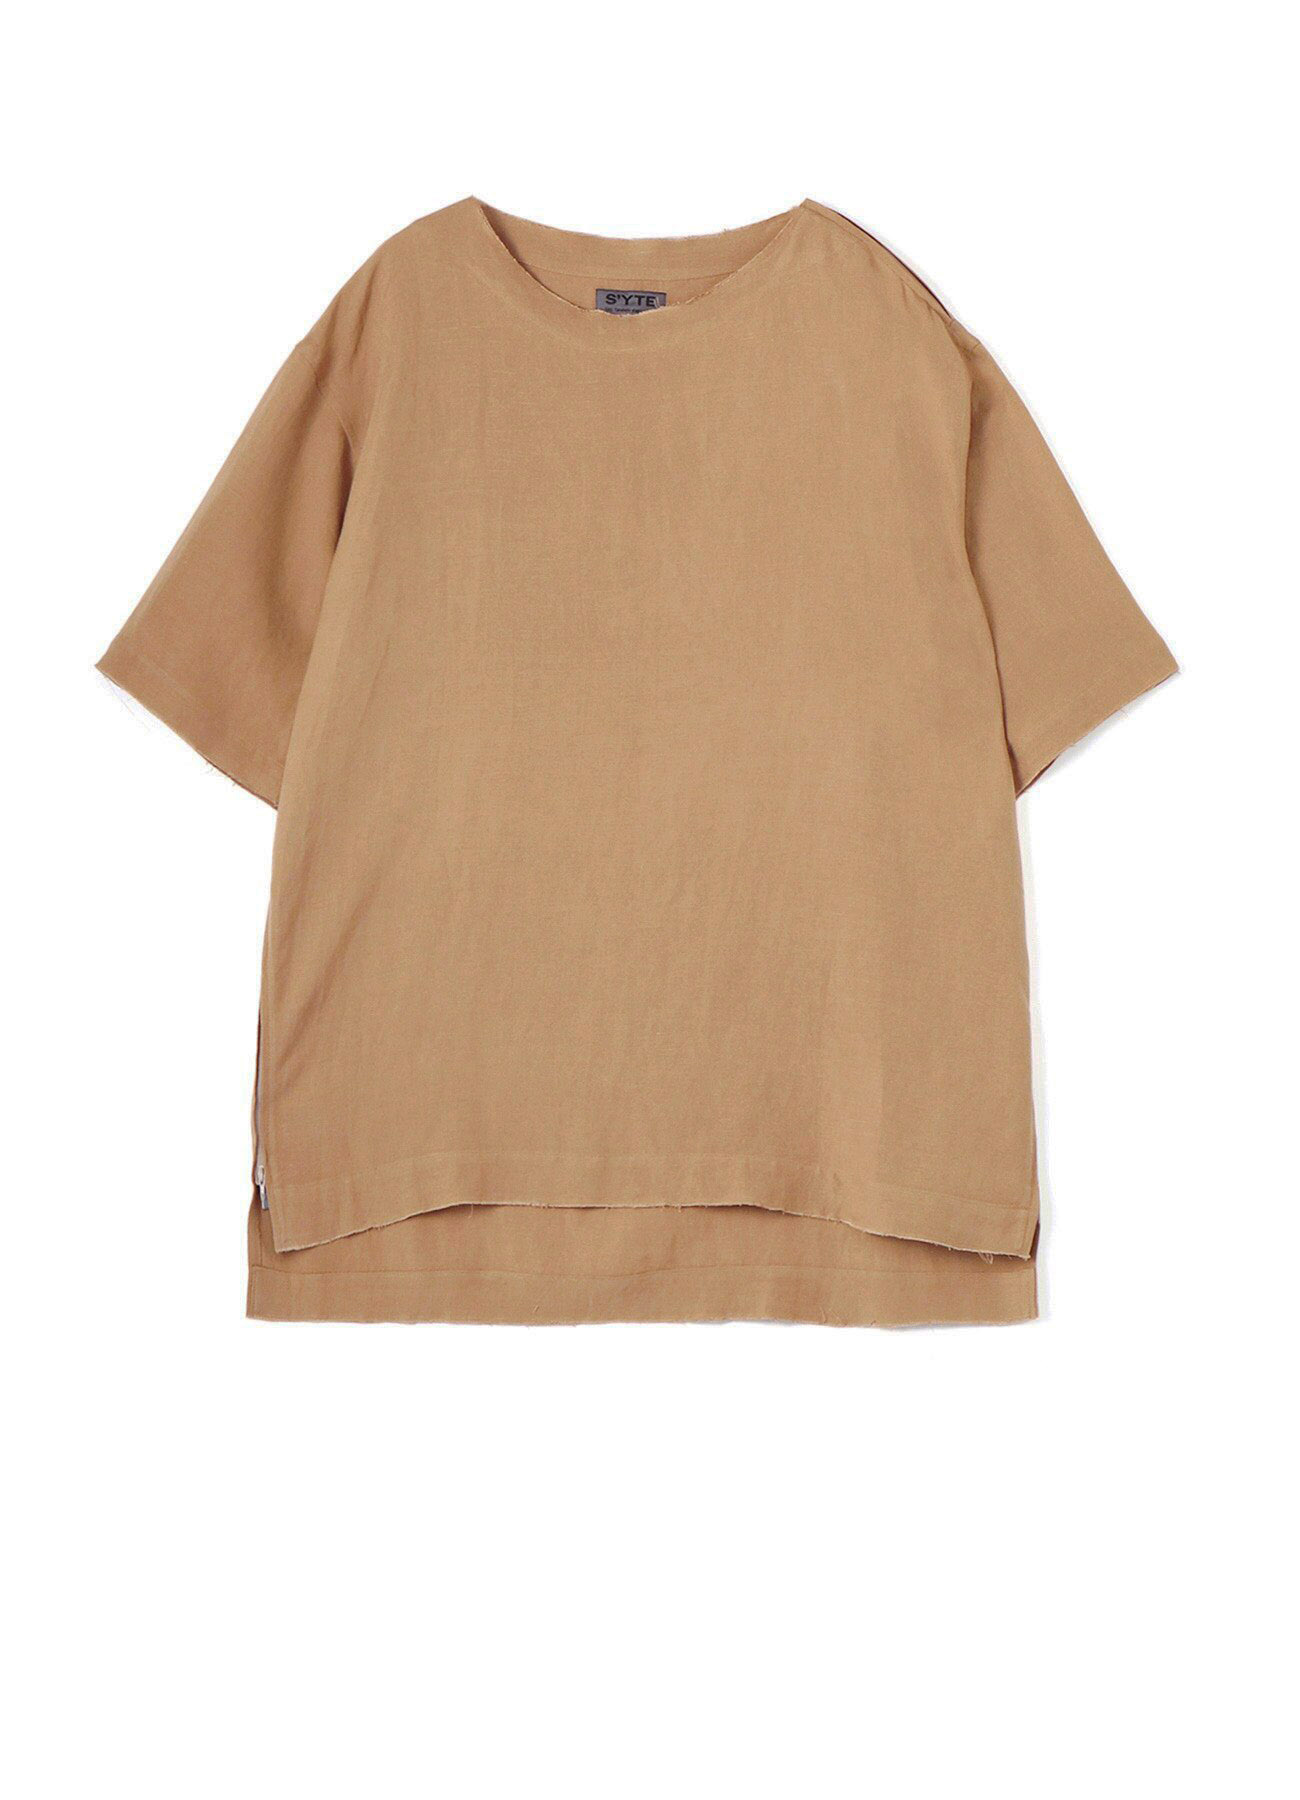 Ry/Li Easy Cross Crew neck shirt pullover